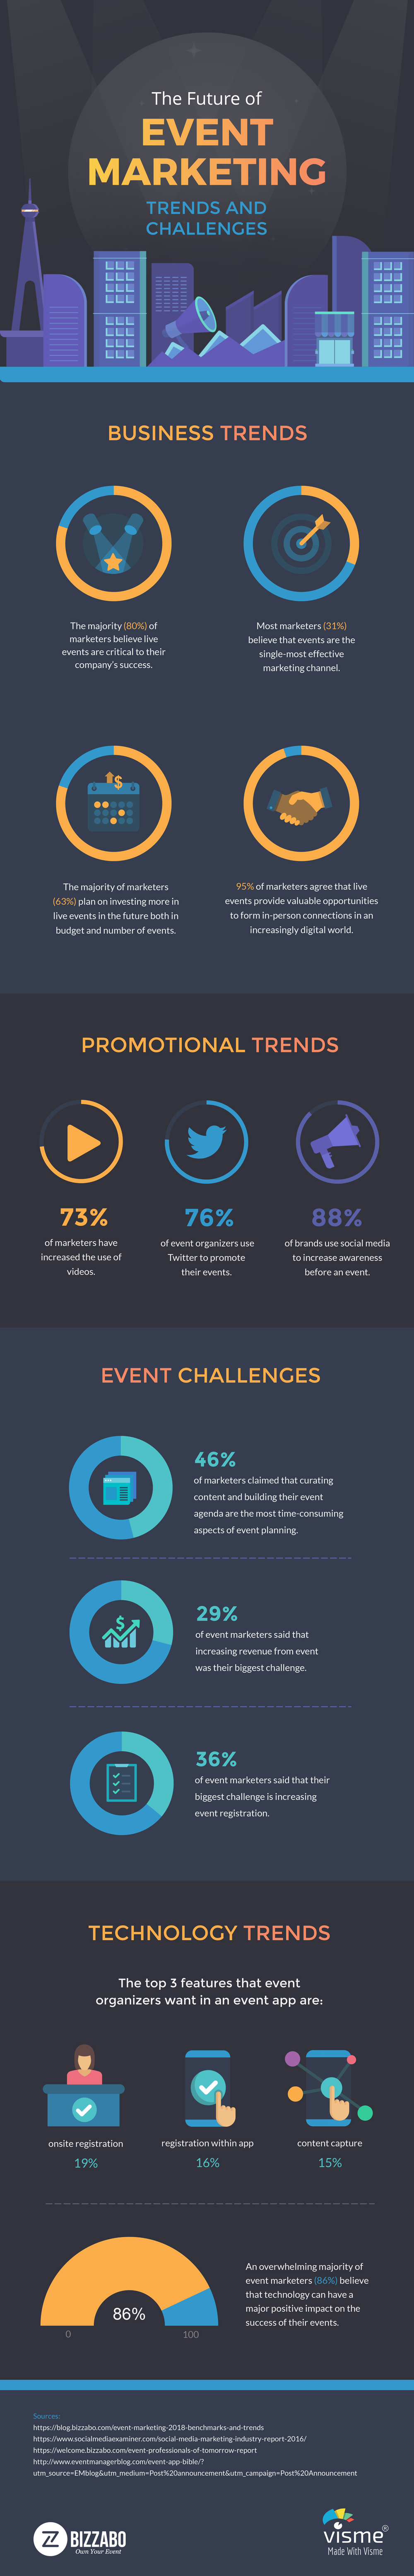 event marketing statistics the future of event marketing trends and challenges